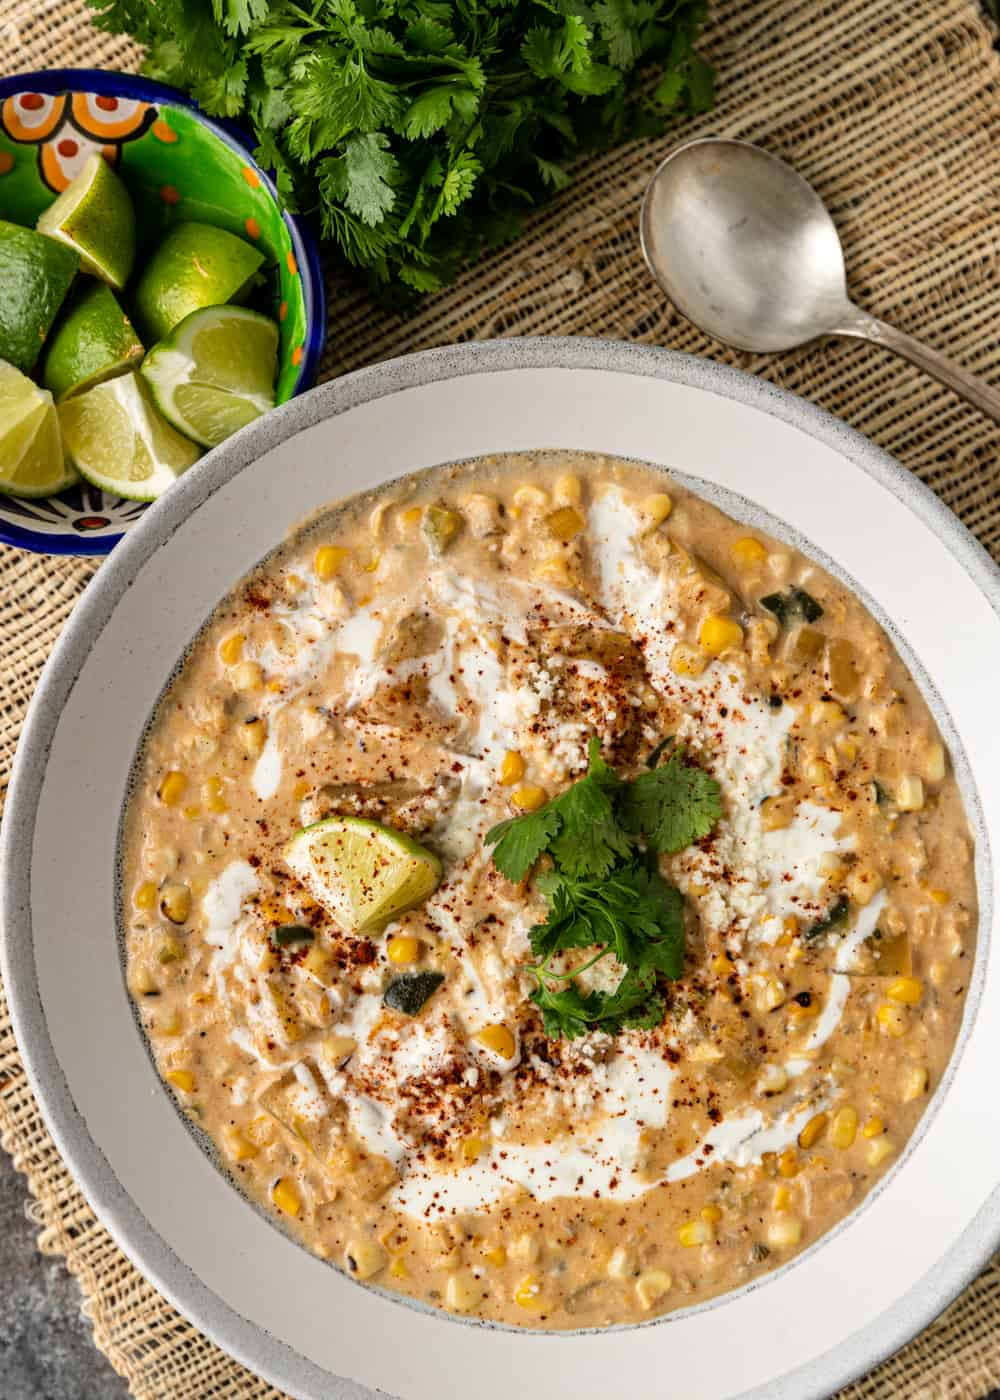 poblano corn chowder in a white bowl next to lime wedges, cilantro, and a spoon